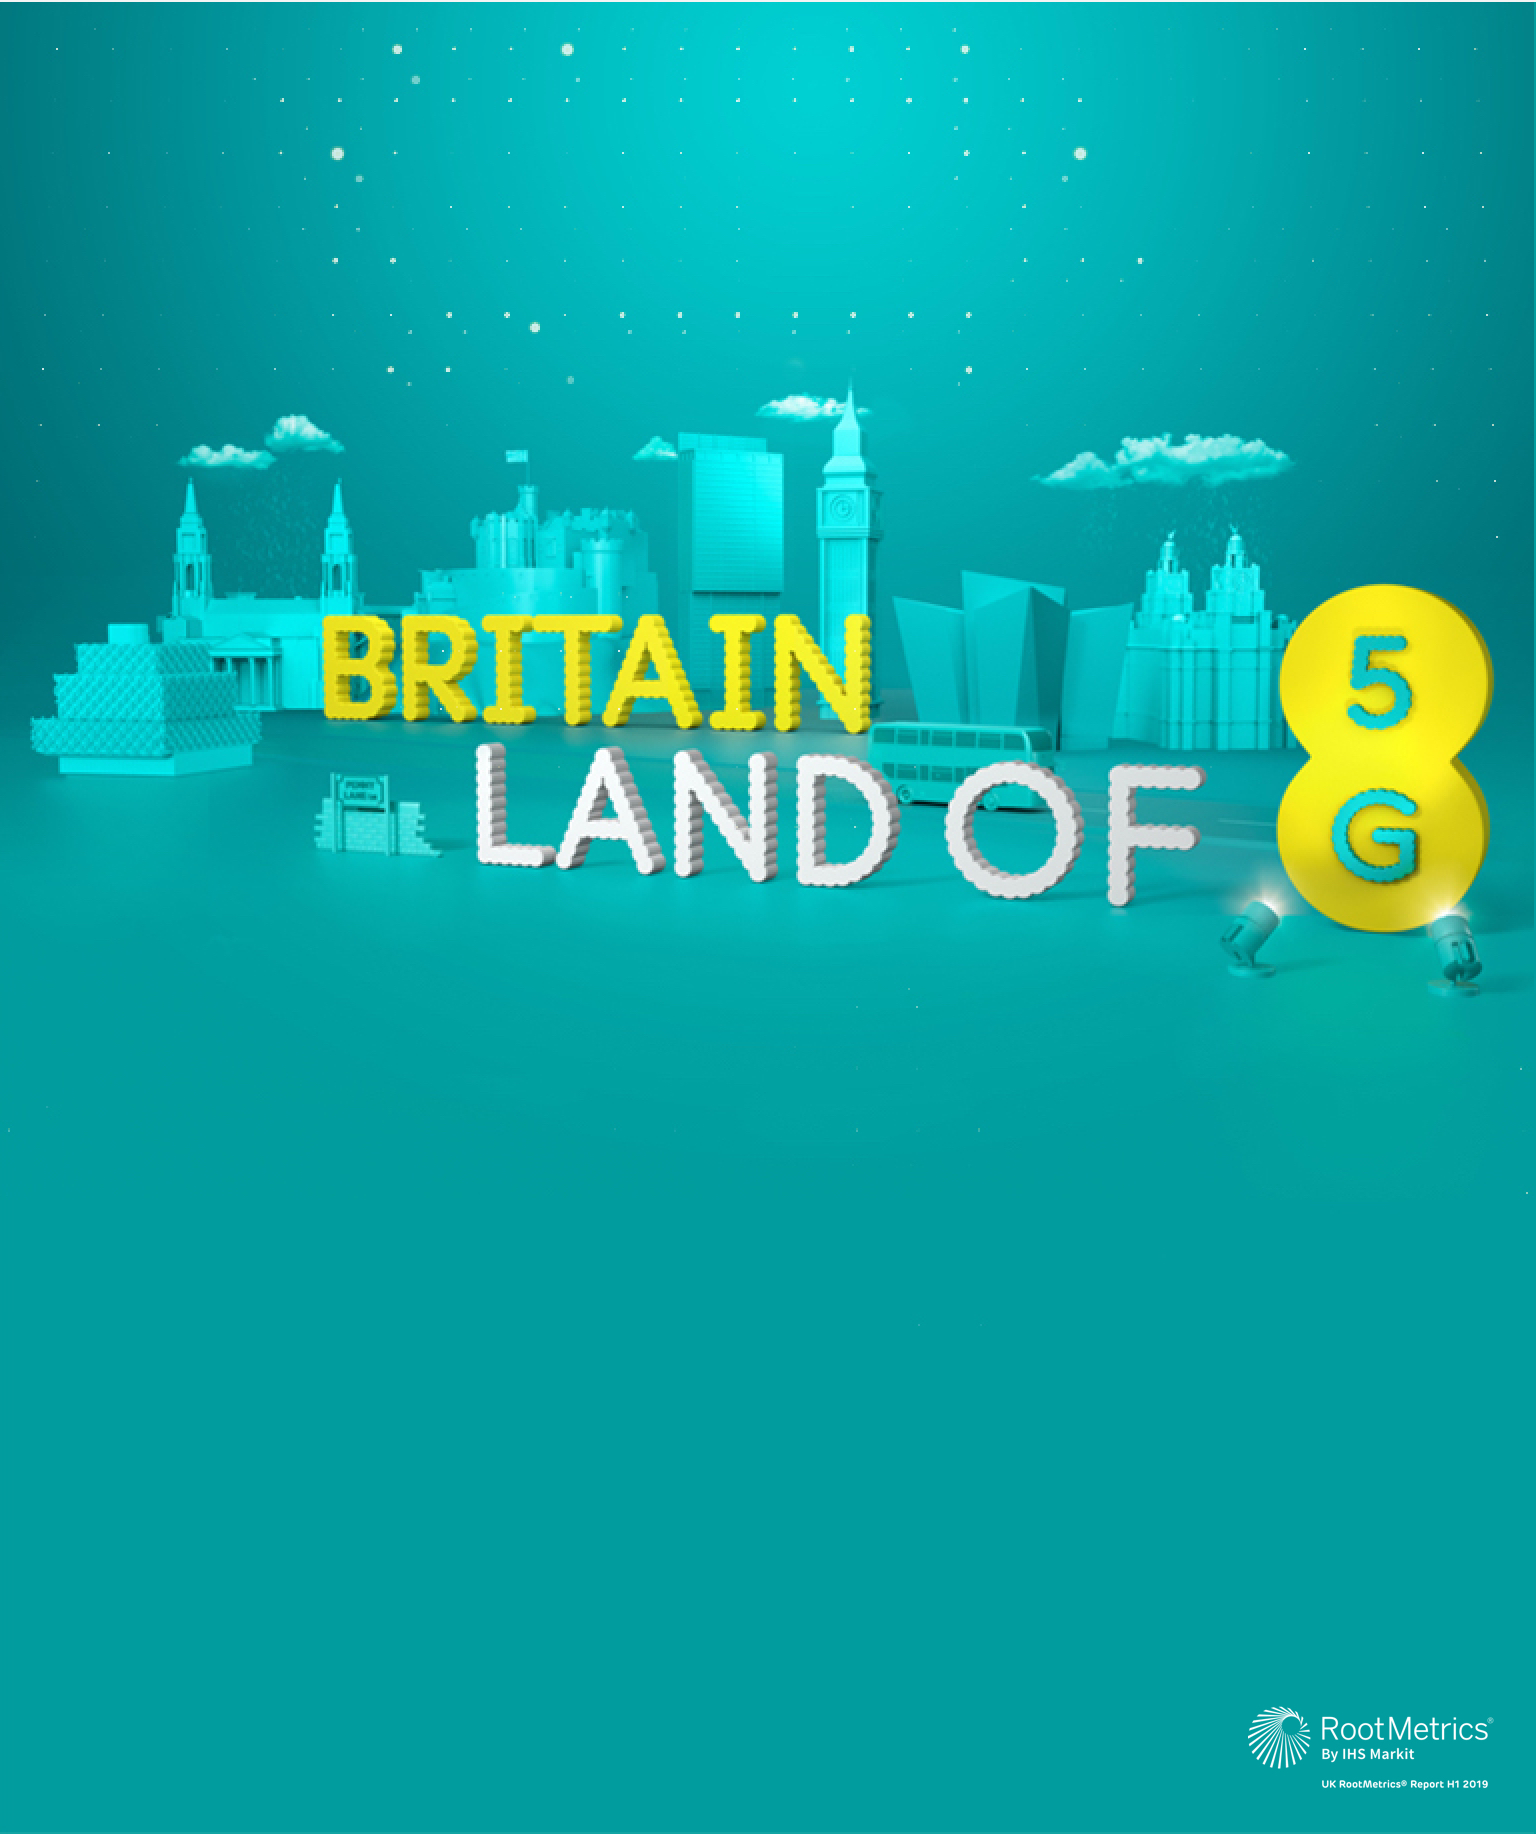 Britain Land of 5G